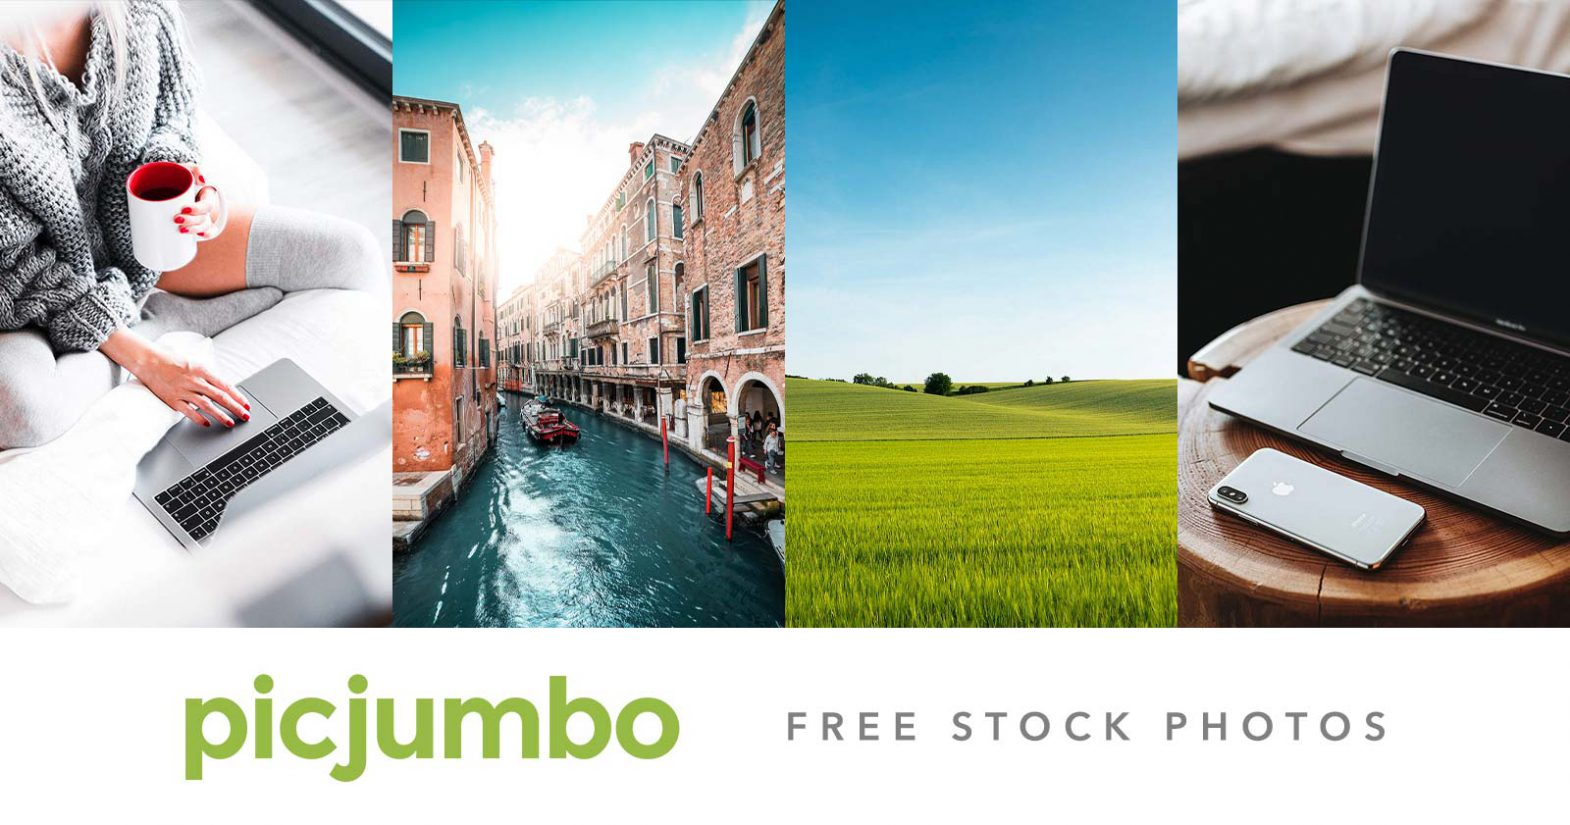 picjumbo: Free Stock Photos